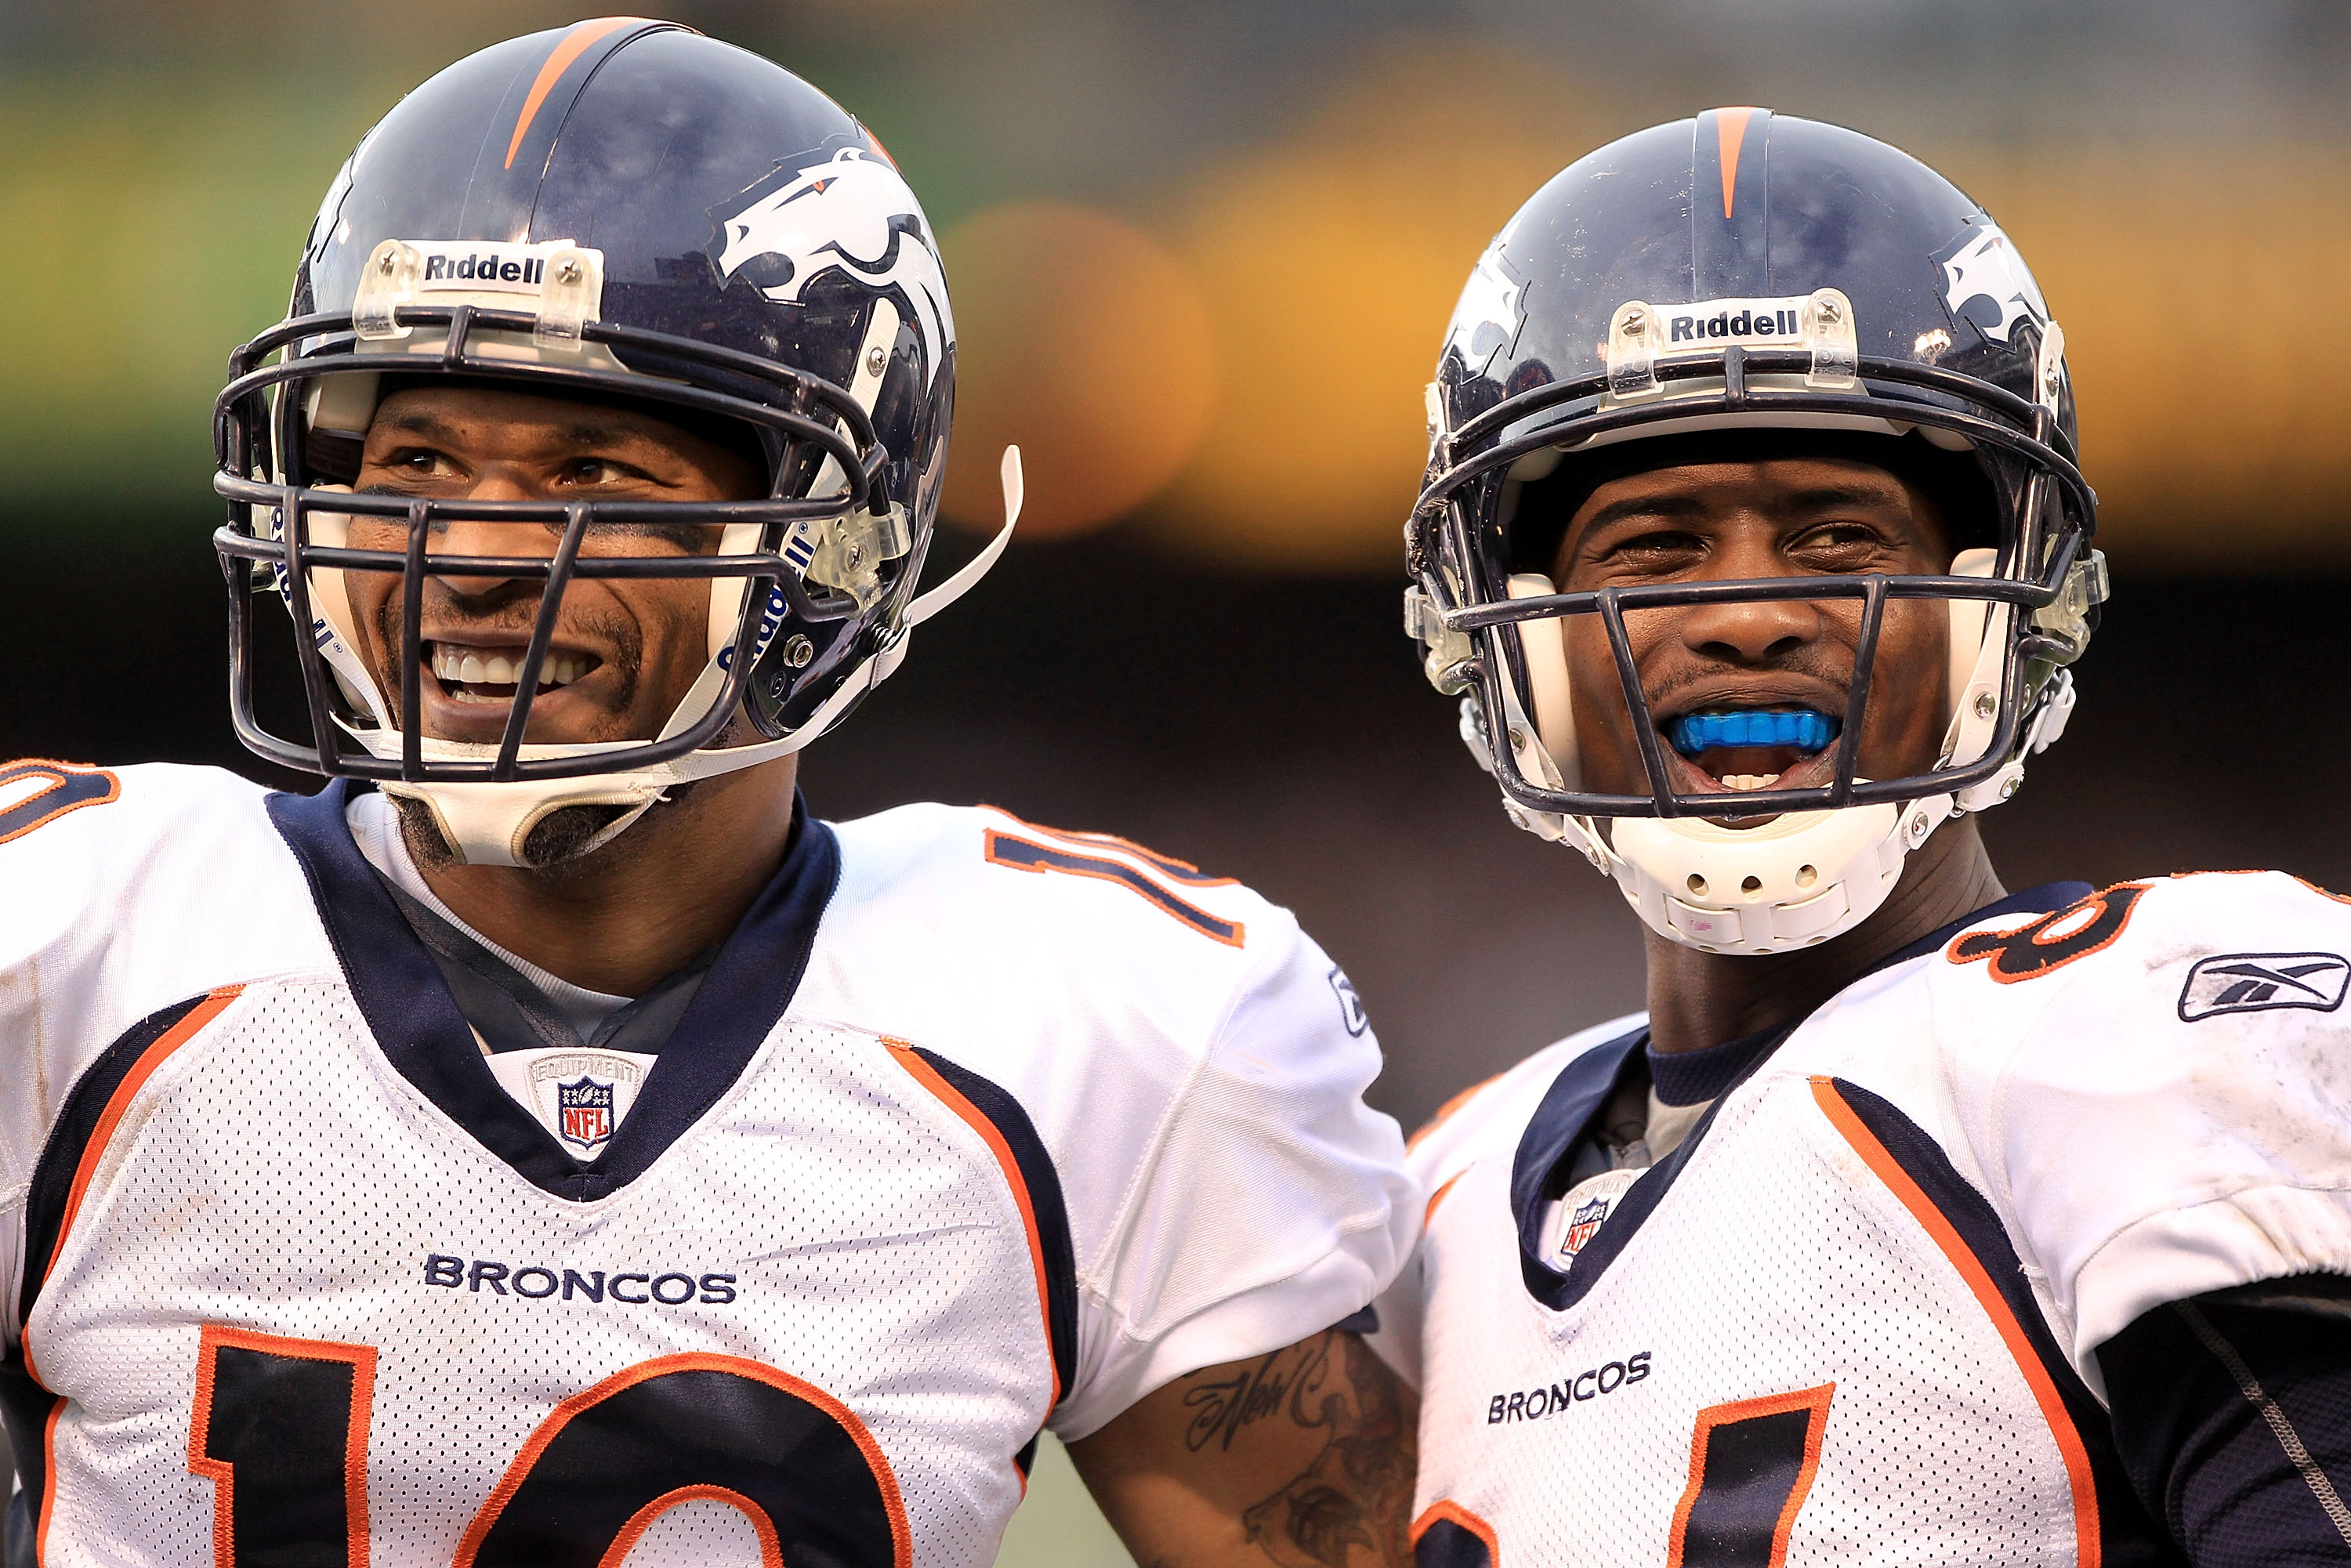 OAKLAND, CA - DECEMBER 19:  Jabar Gaffney #10 (left) and Brandon Lloyd #84 of the Denver Broncos smile at the Raider fans during their game against the Oakland Raiders at Oakland-Alameda County Coliseum on December 19, 2010 in Oakland, California.  (Photo